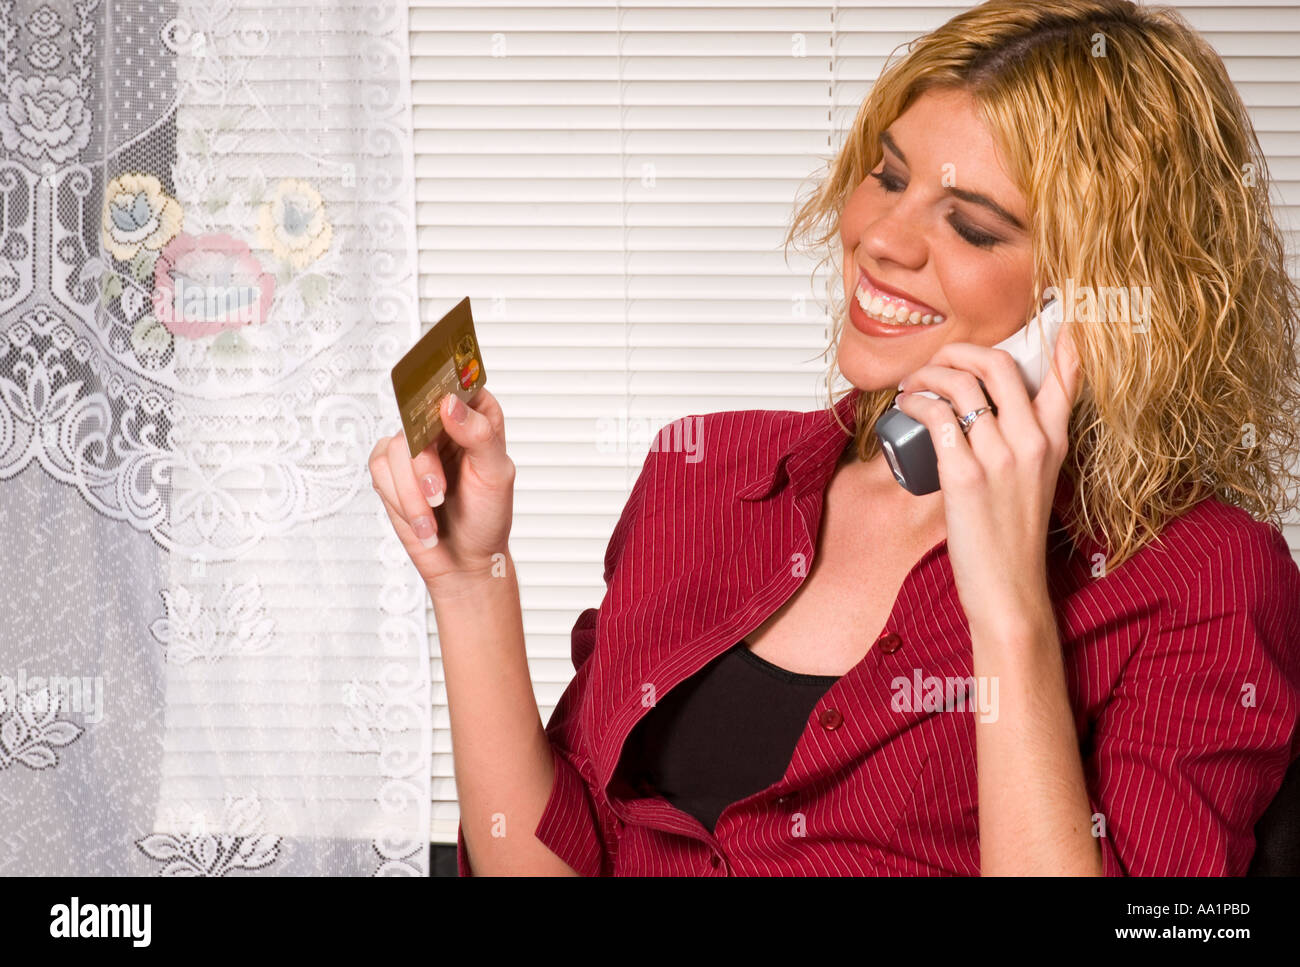 Young woman smiles and gives credit card number over phone USA Stock Photo